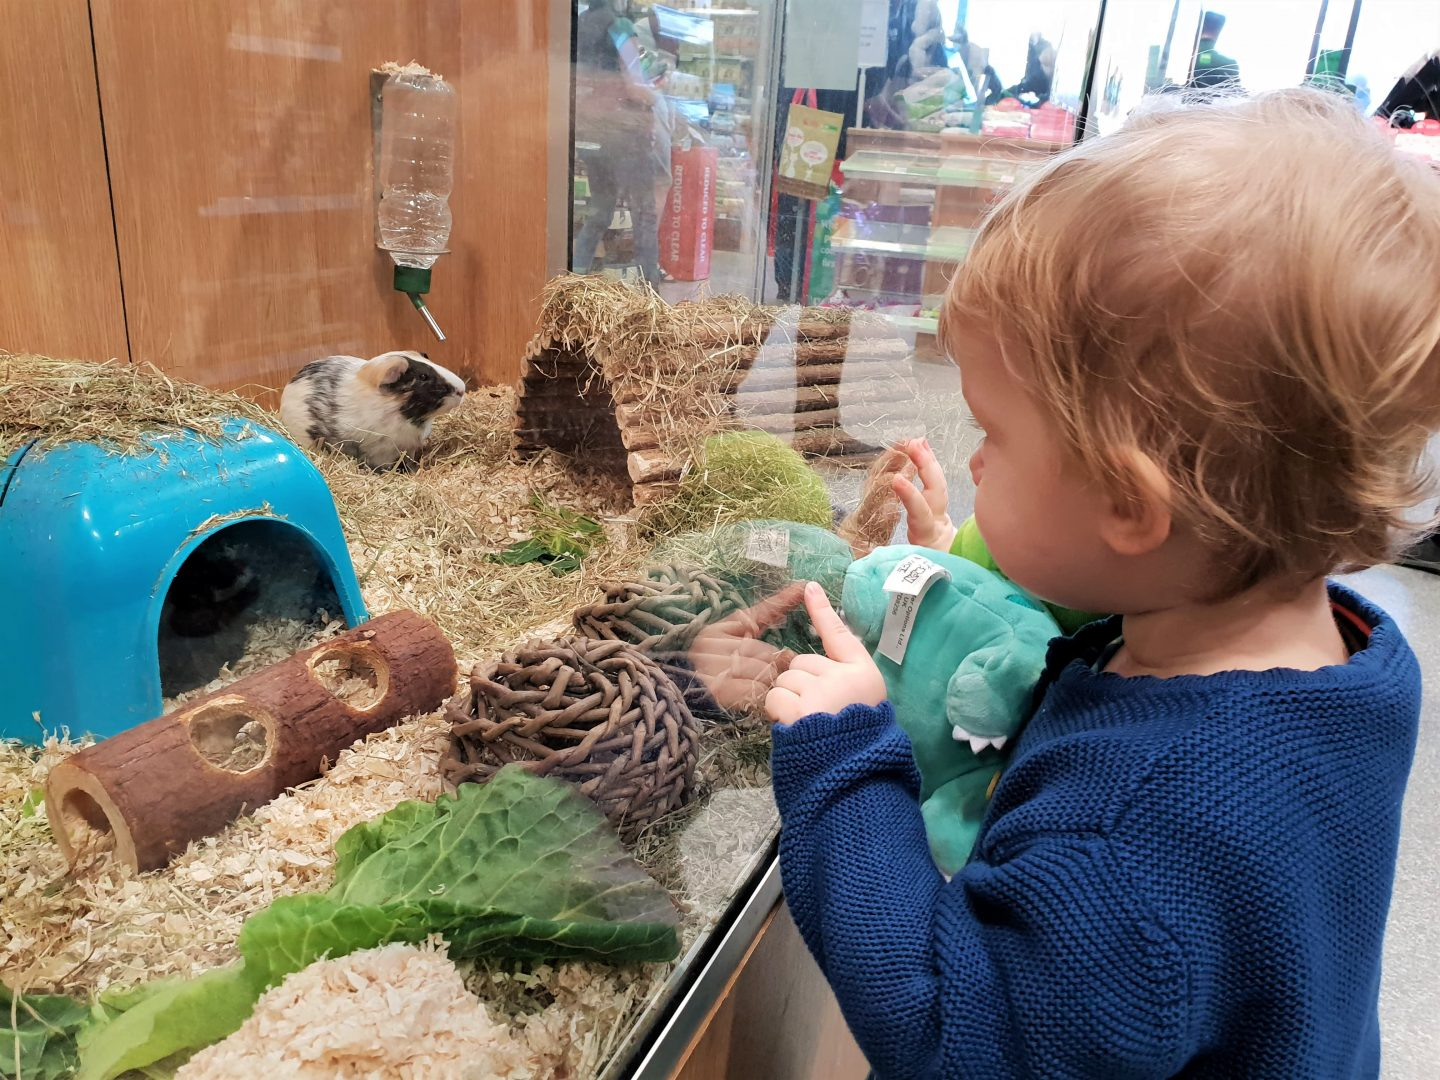 Toddler looking at guinea pigs in Pets at Home, South Aylesford Retail Park